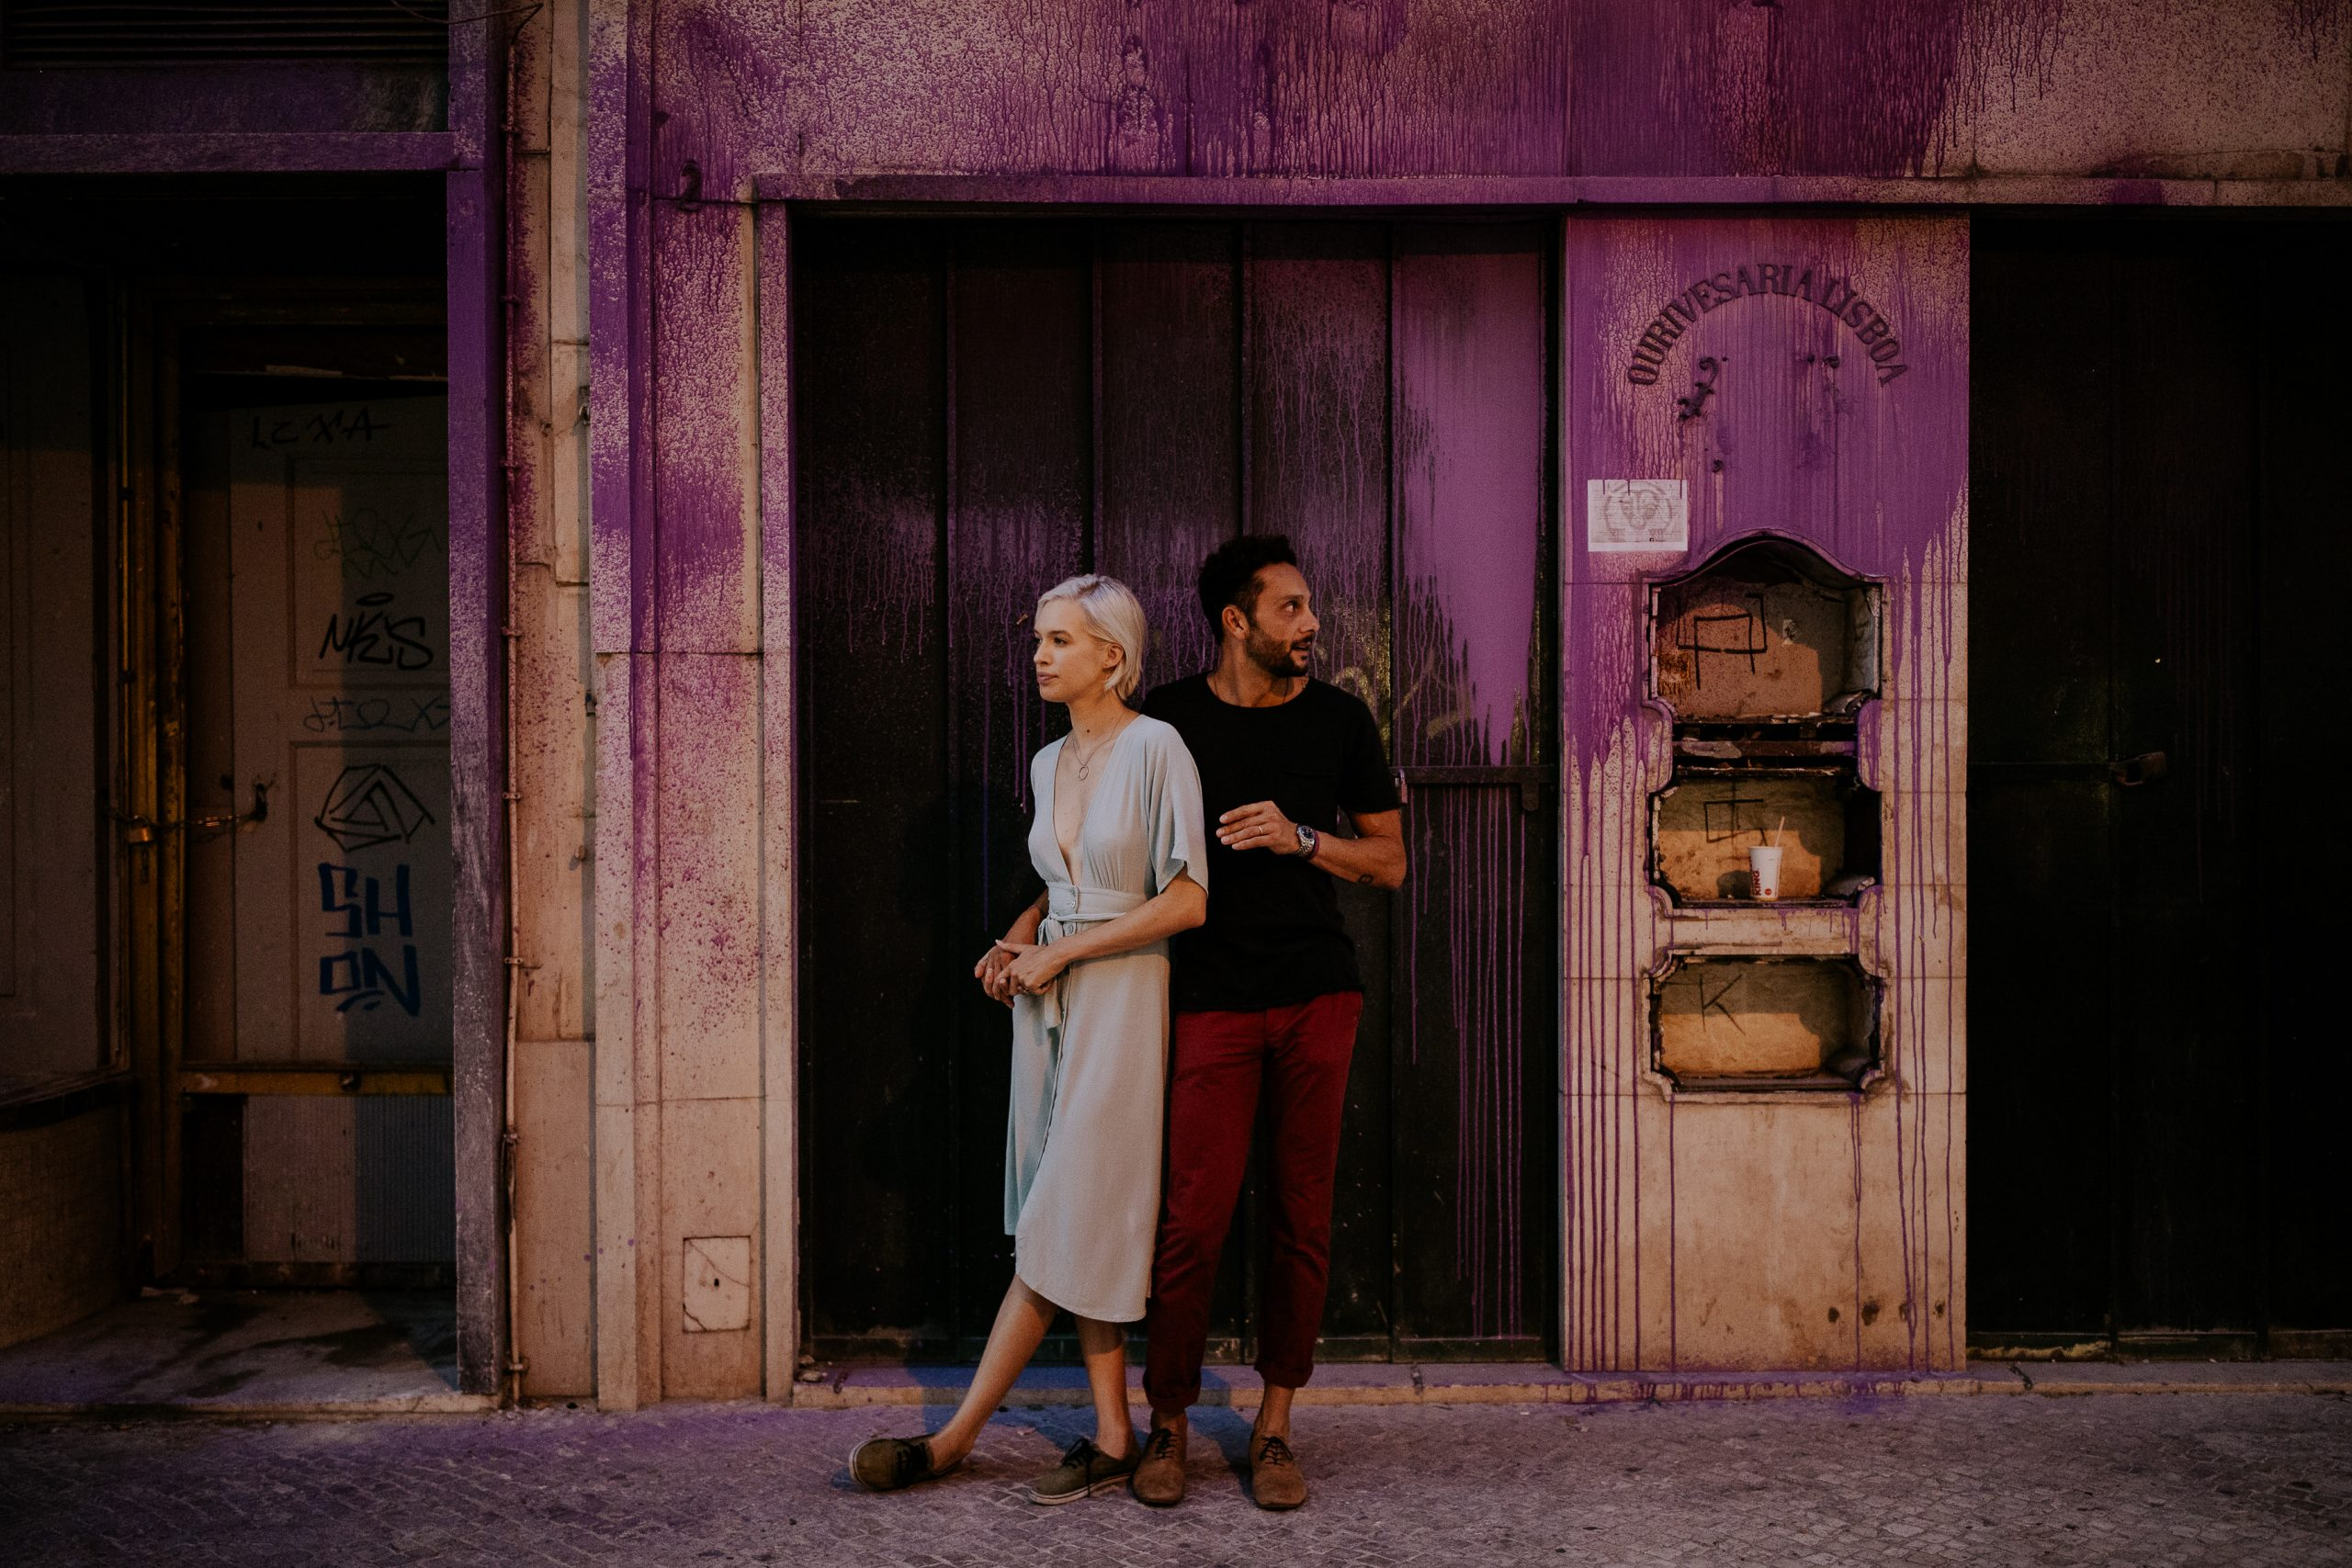 man and woman in the street next to a purple wall